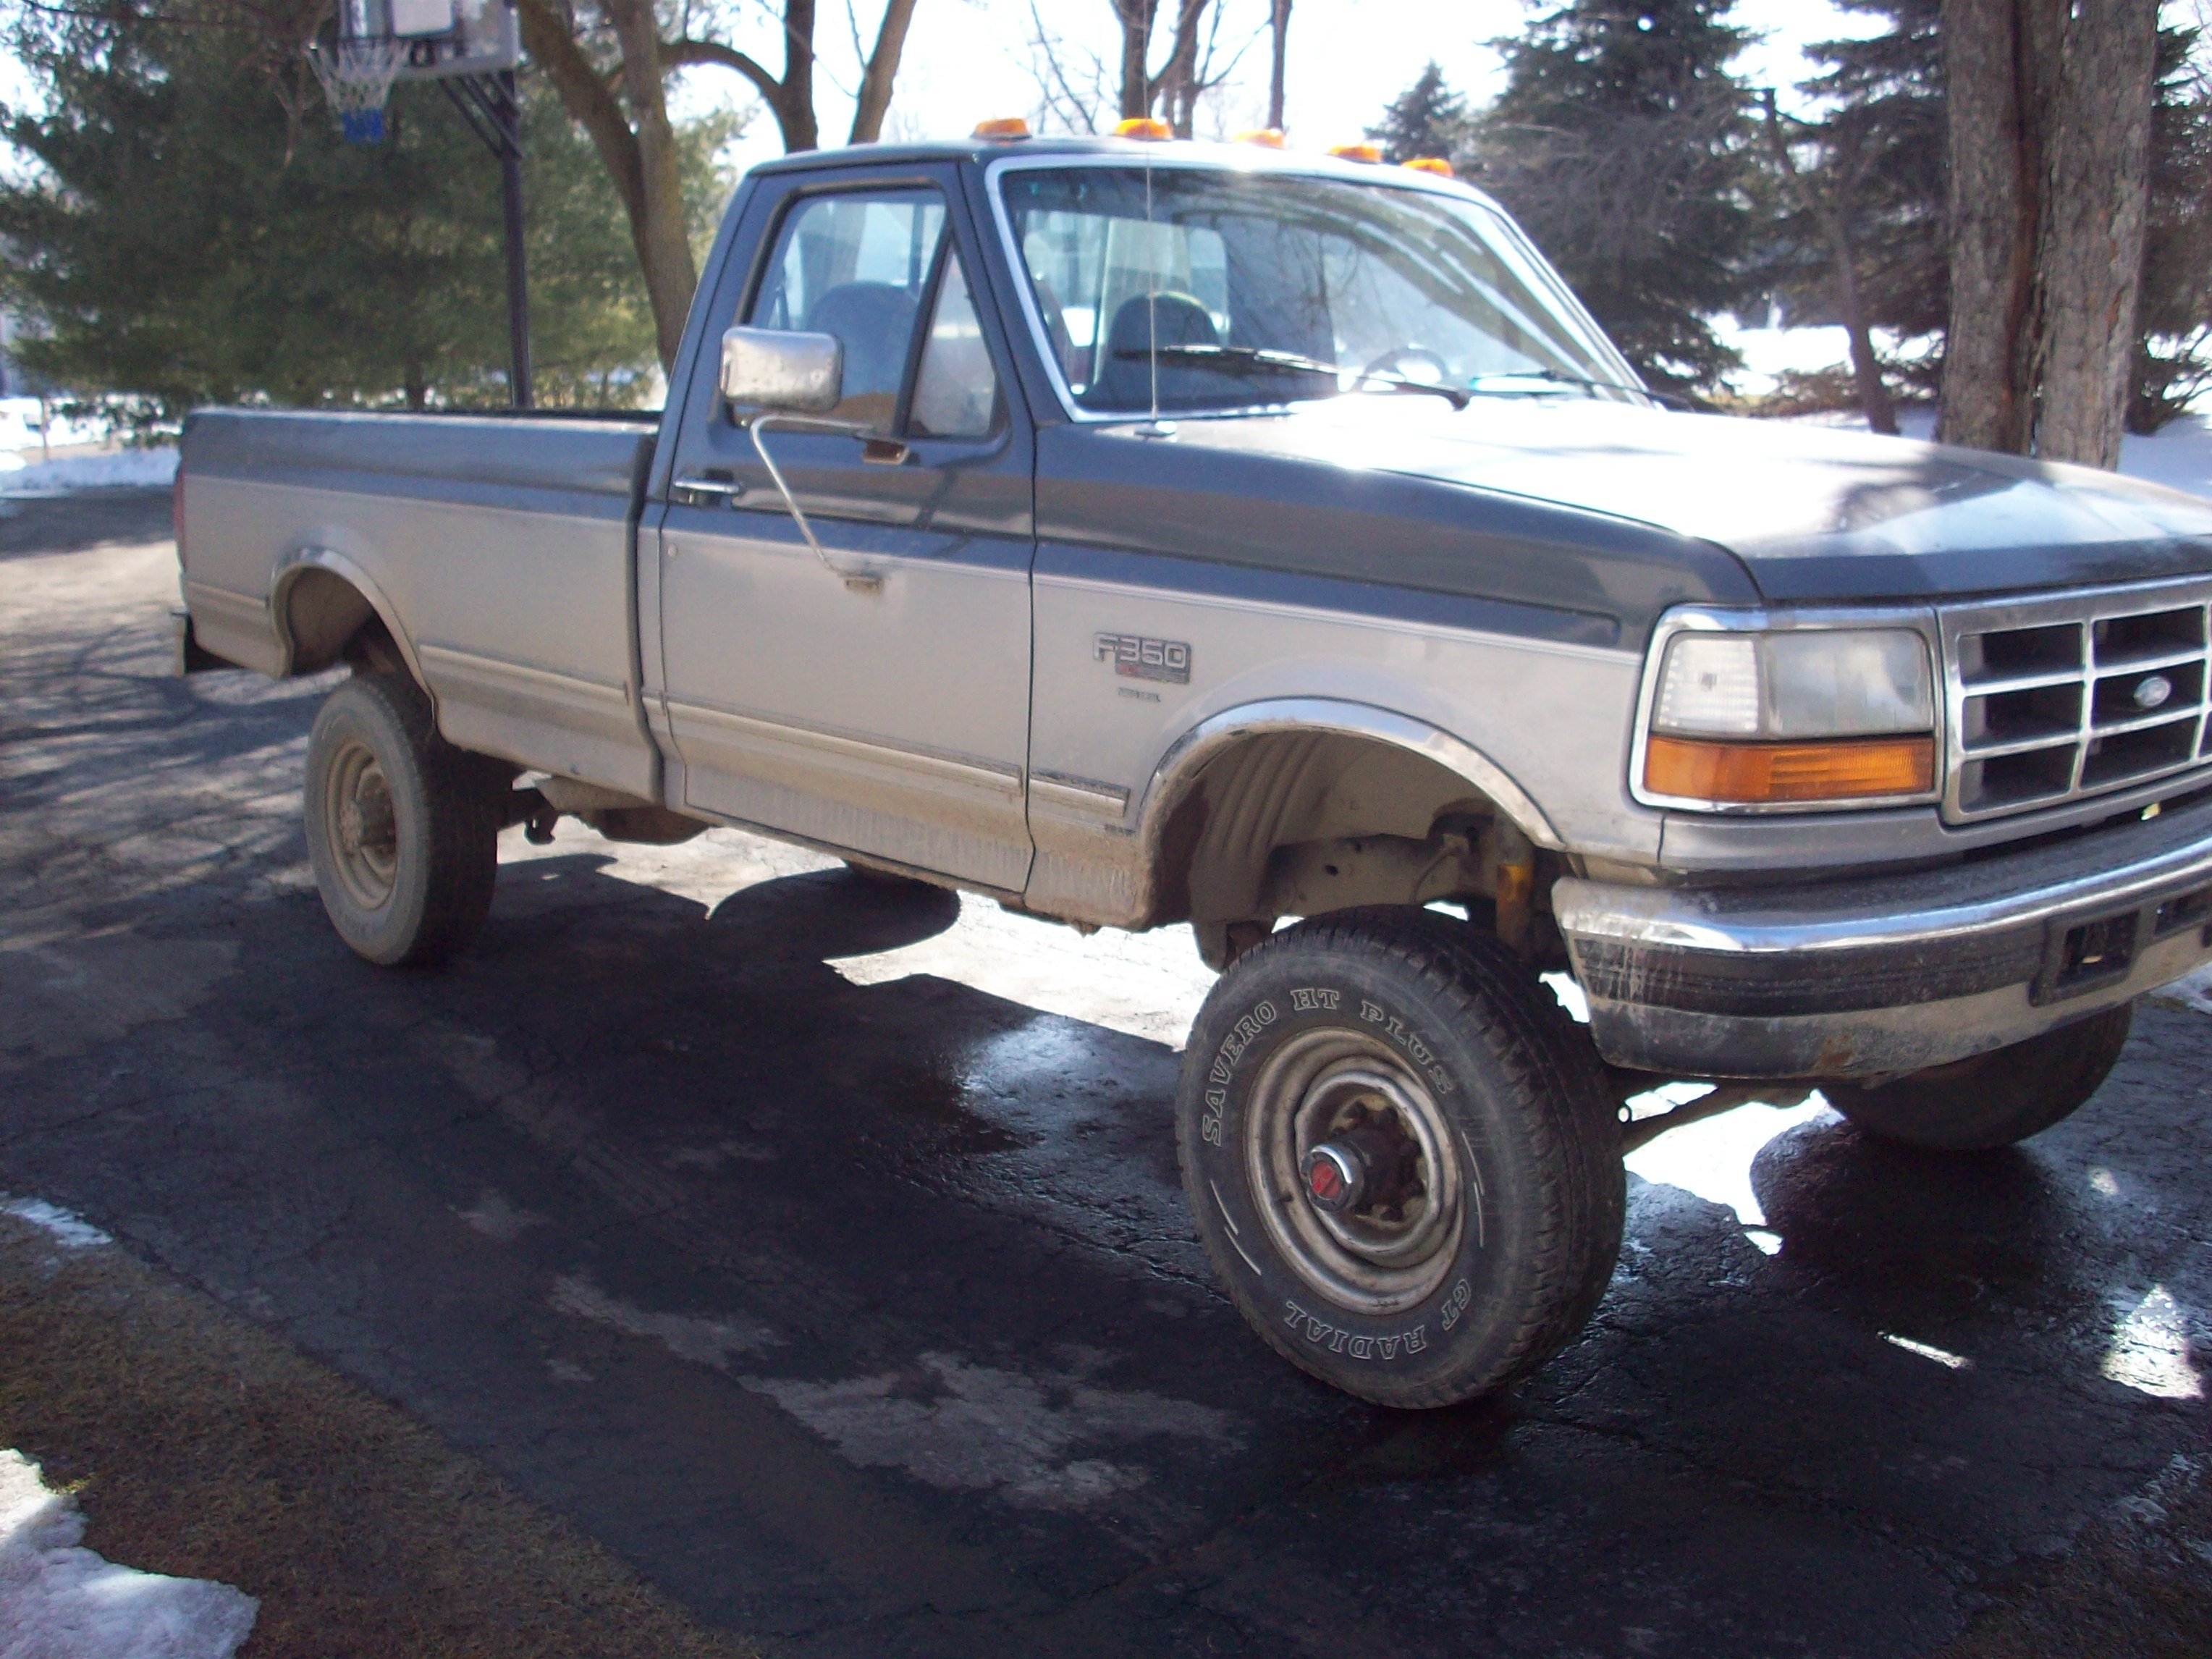 Ford826 1994 Ford F350 Super Duty Regular Cab Specs Photos Modification Info At Cardomain